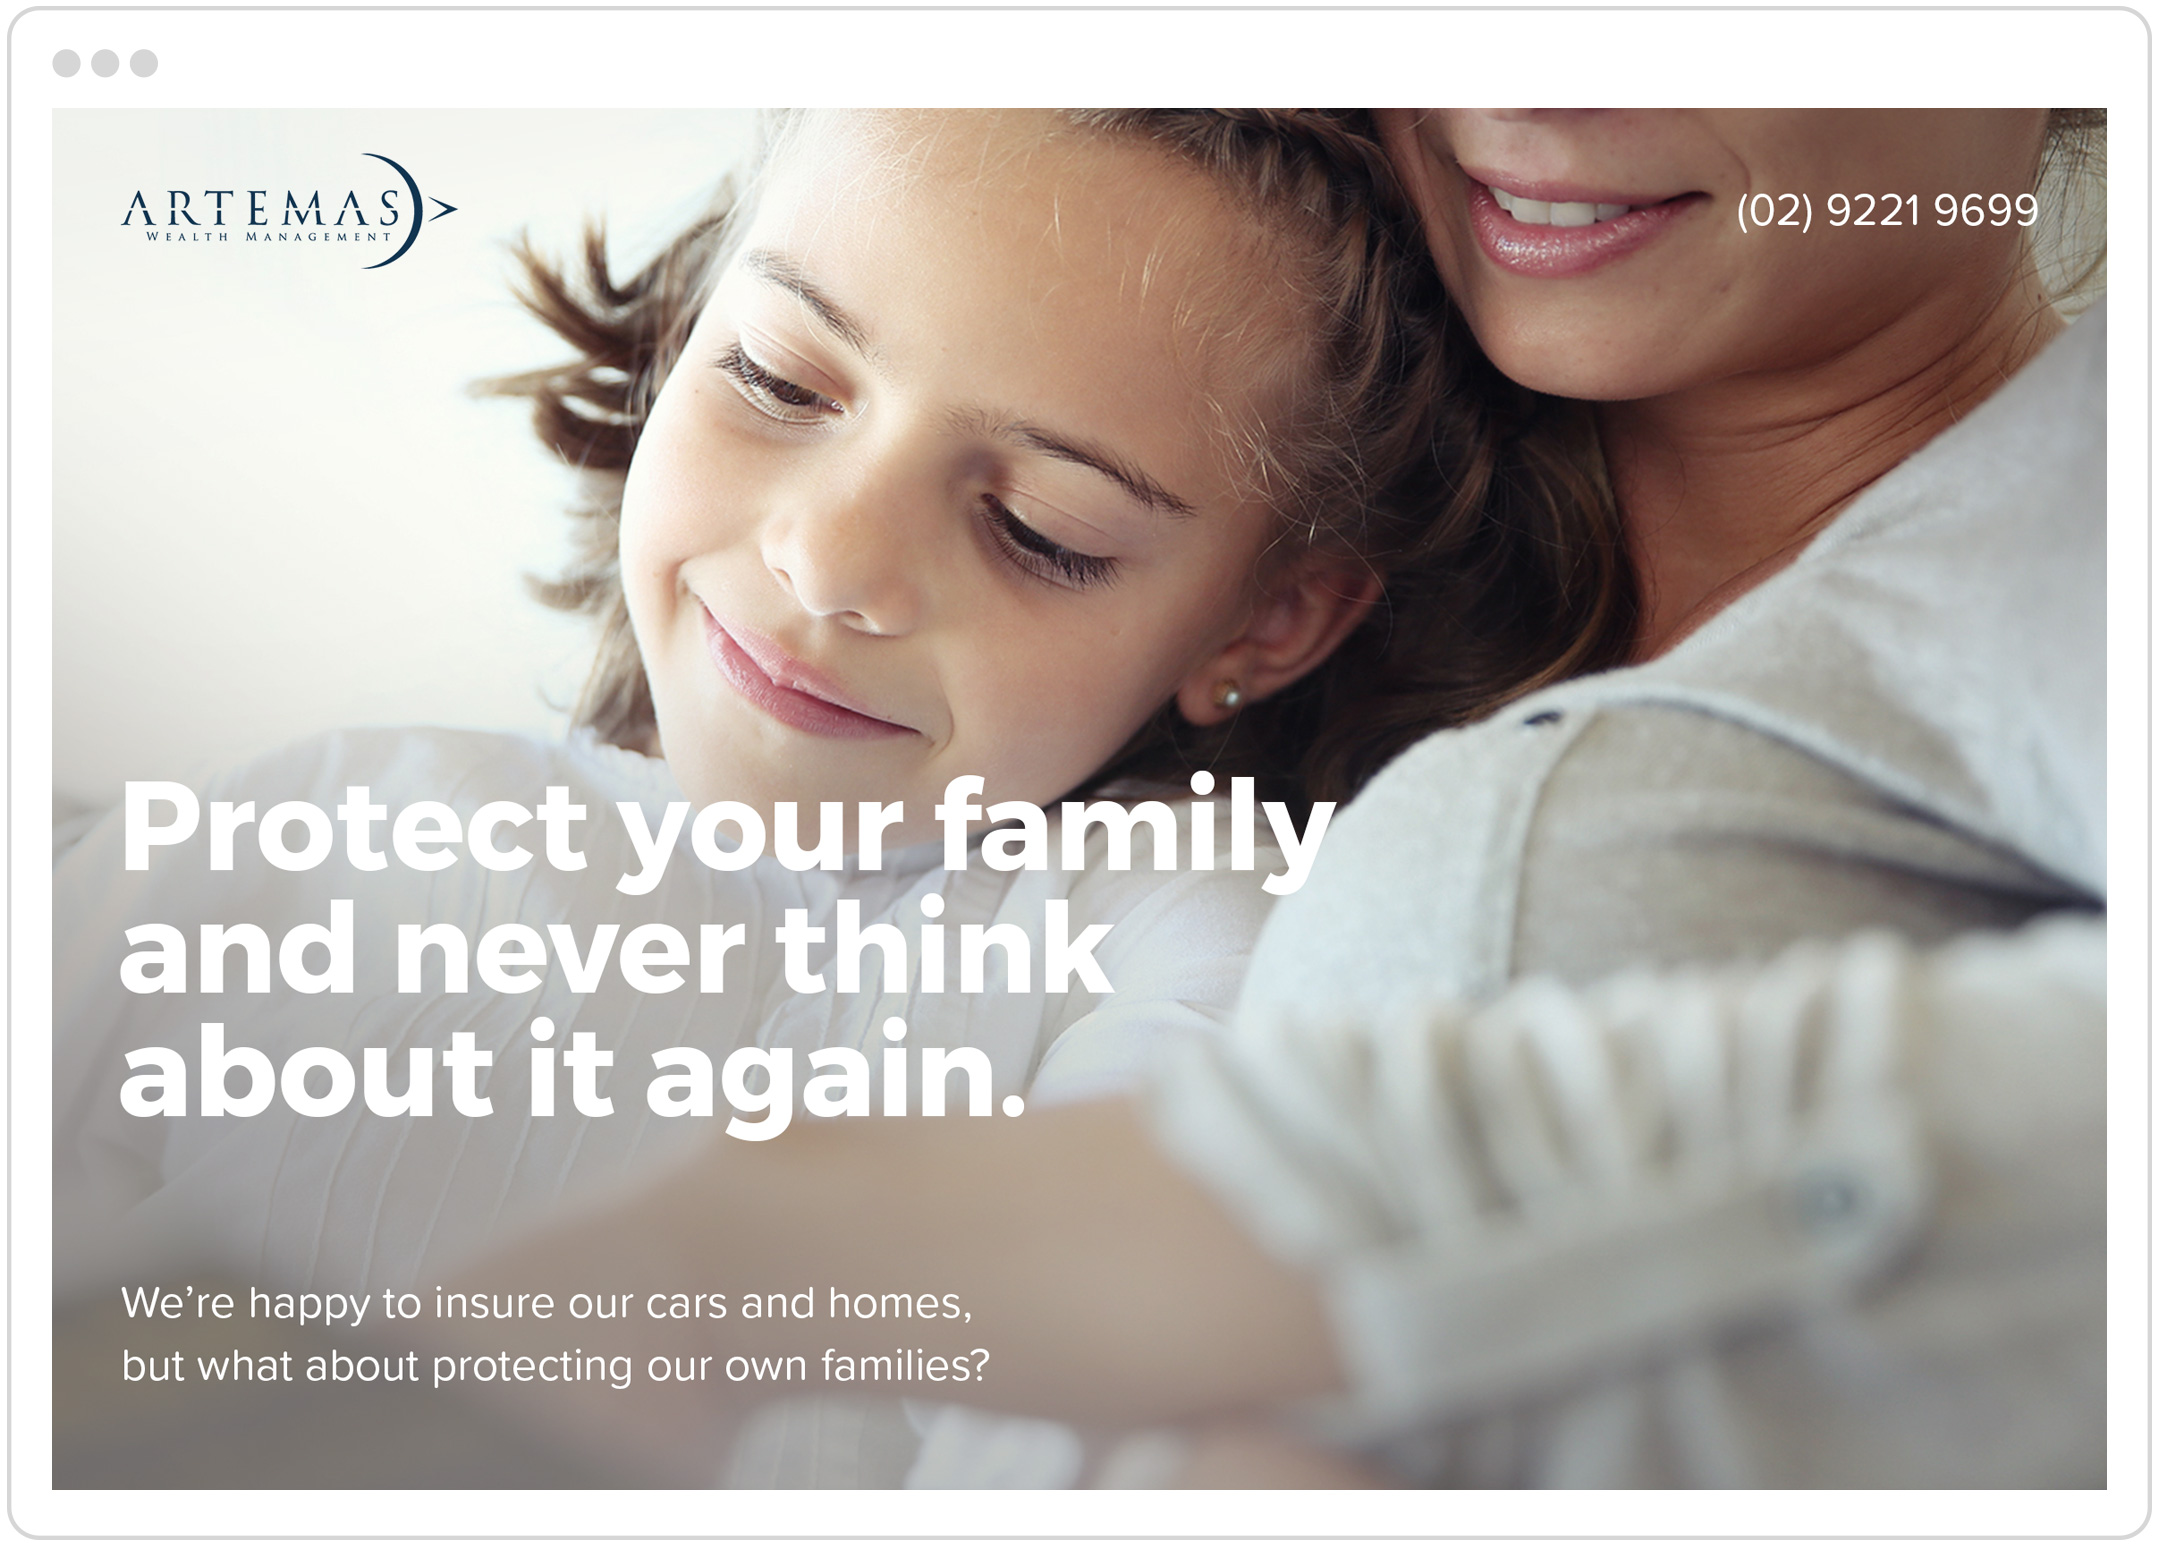 'Life Insurance' messaging for Adwords Campaign.